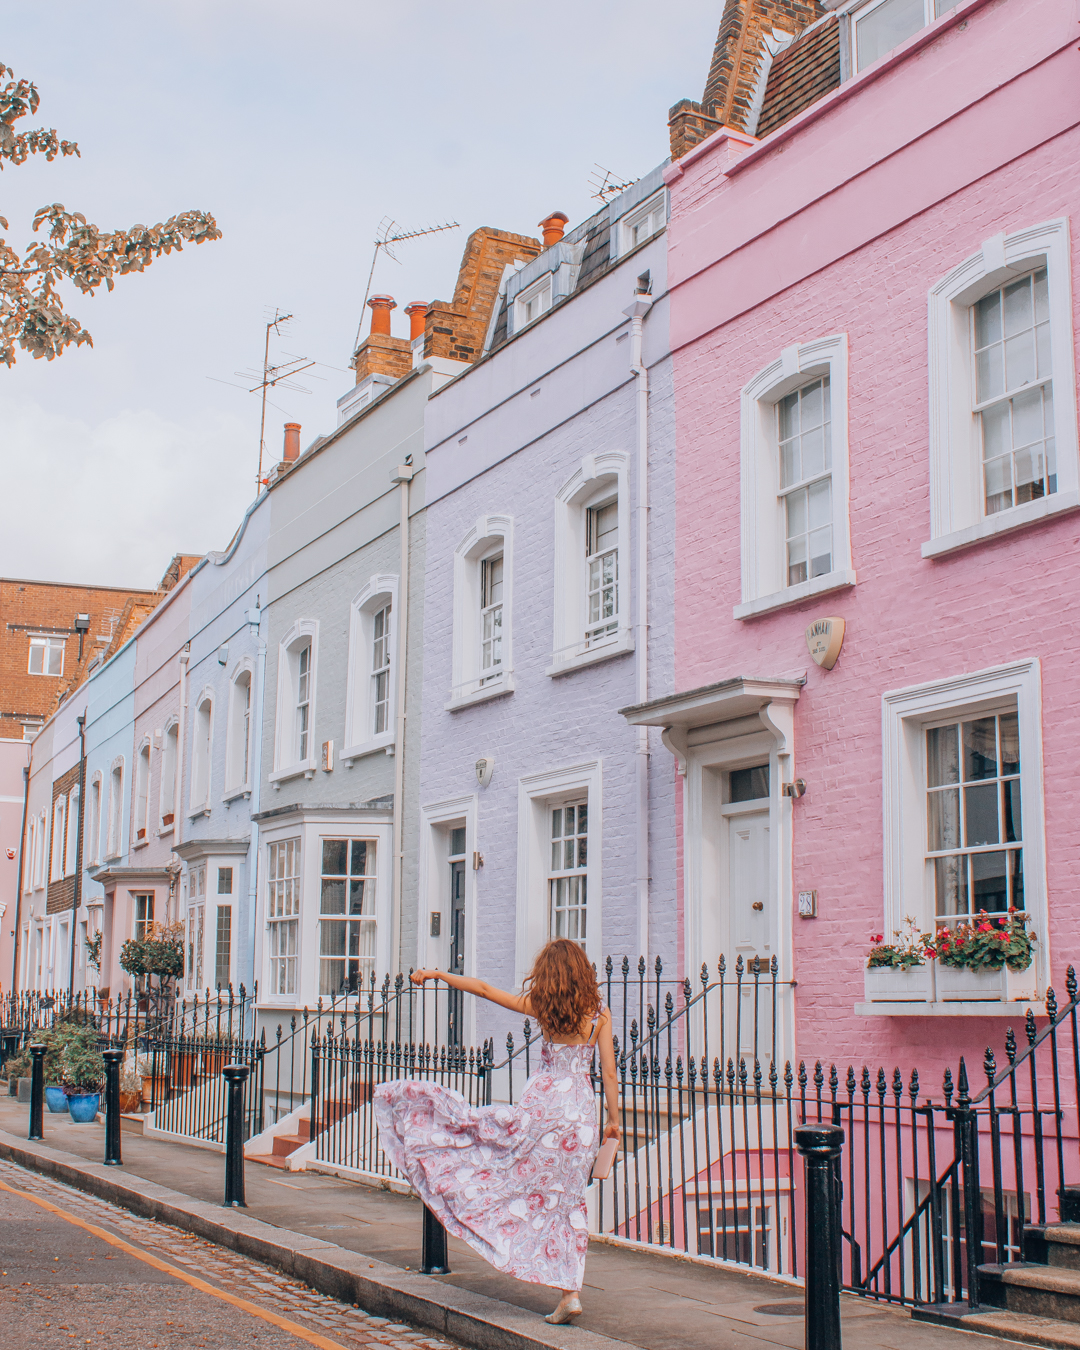 Instagrammable row of houses at Bywater Street in London